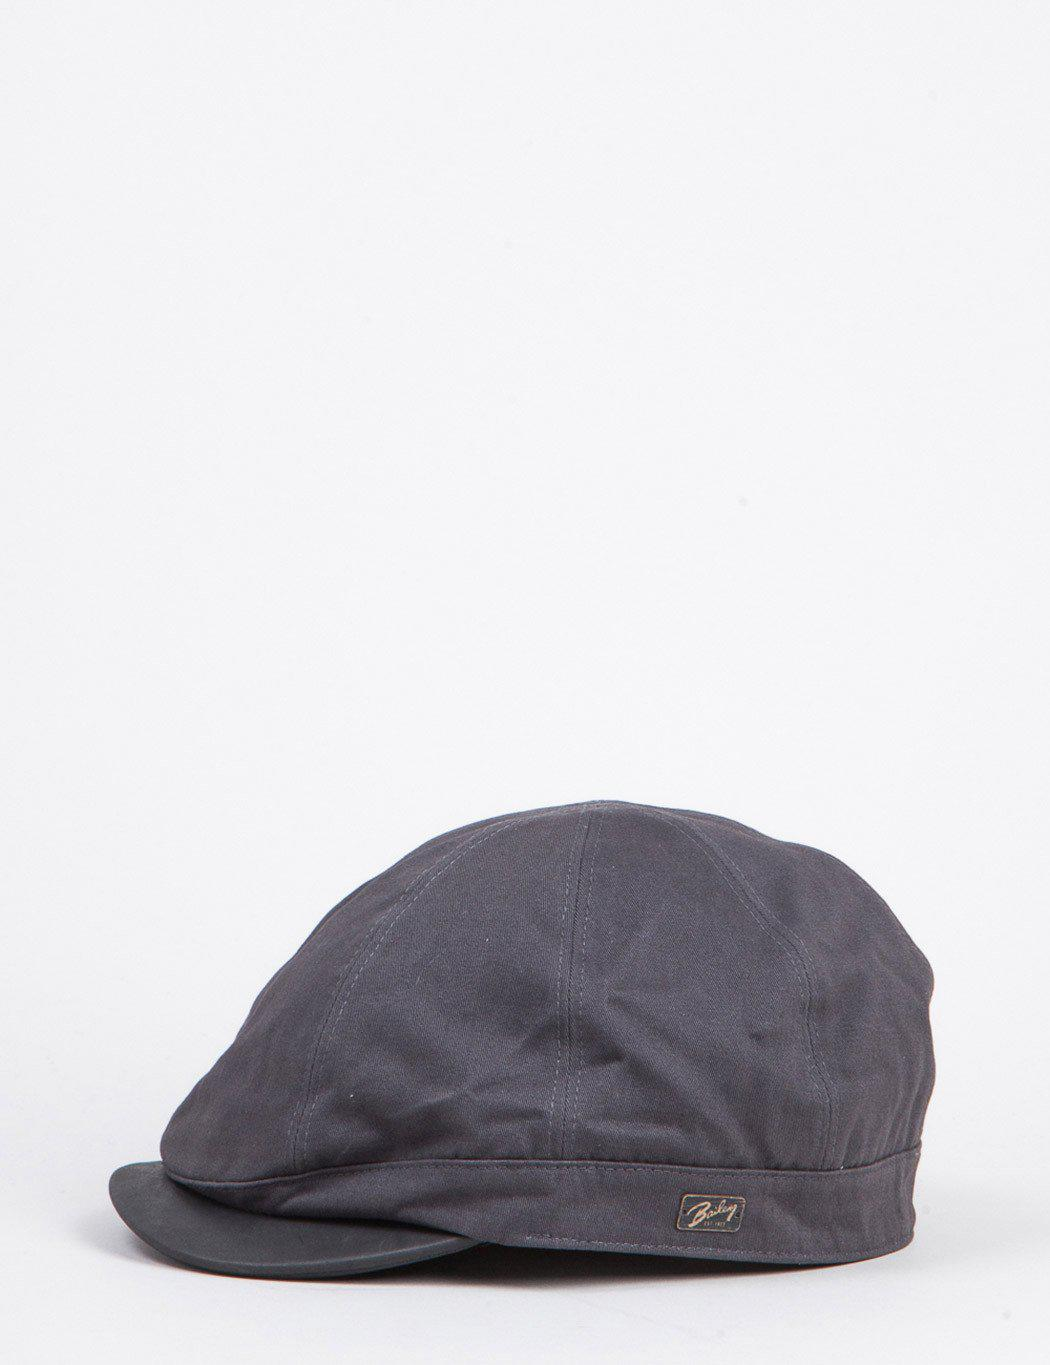 124c2b8d Bailey of Hollywood Bailey Rodis Leather Peak Flat Cap in Gray for ...